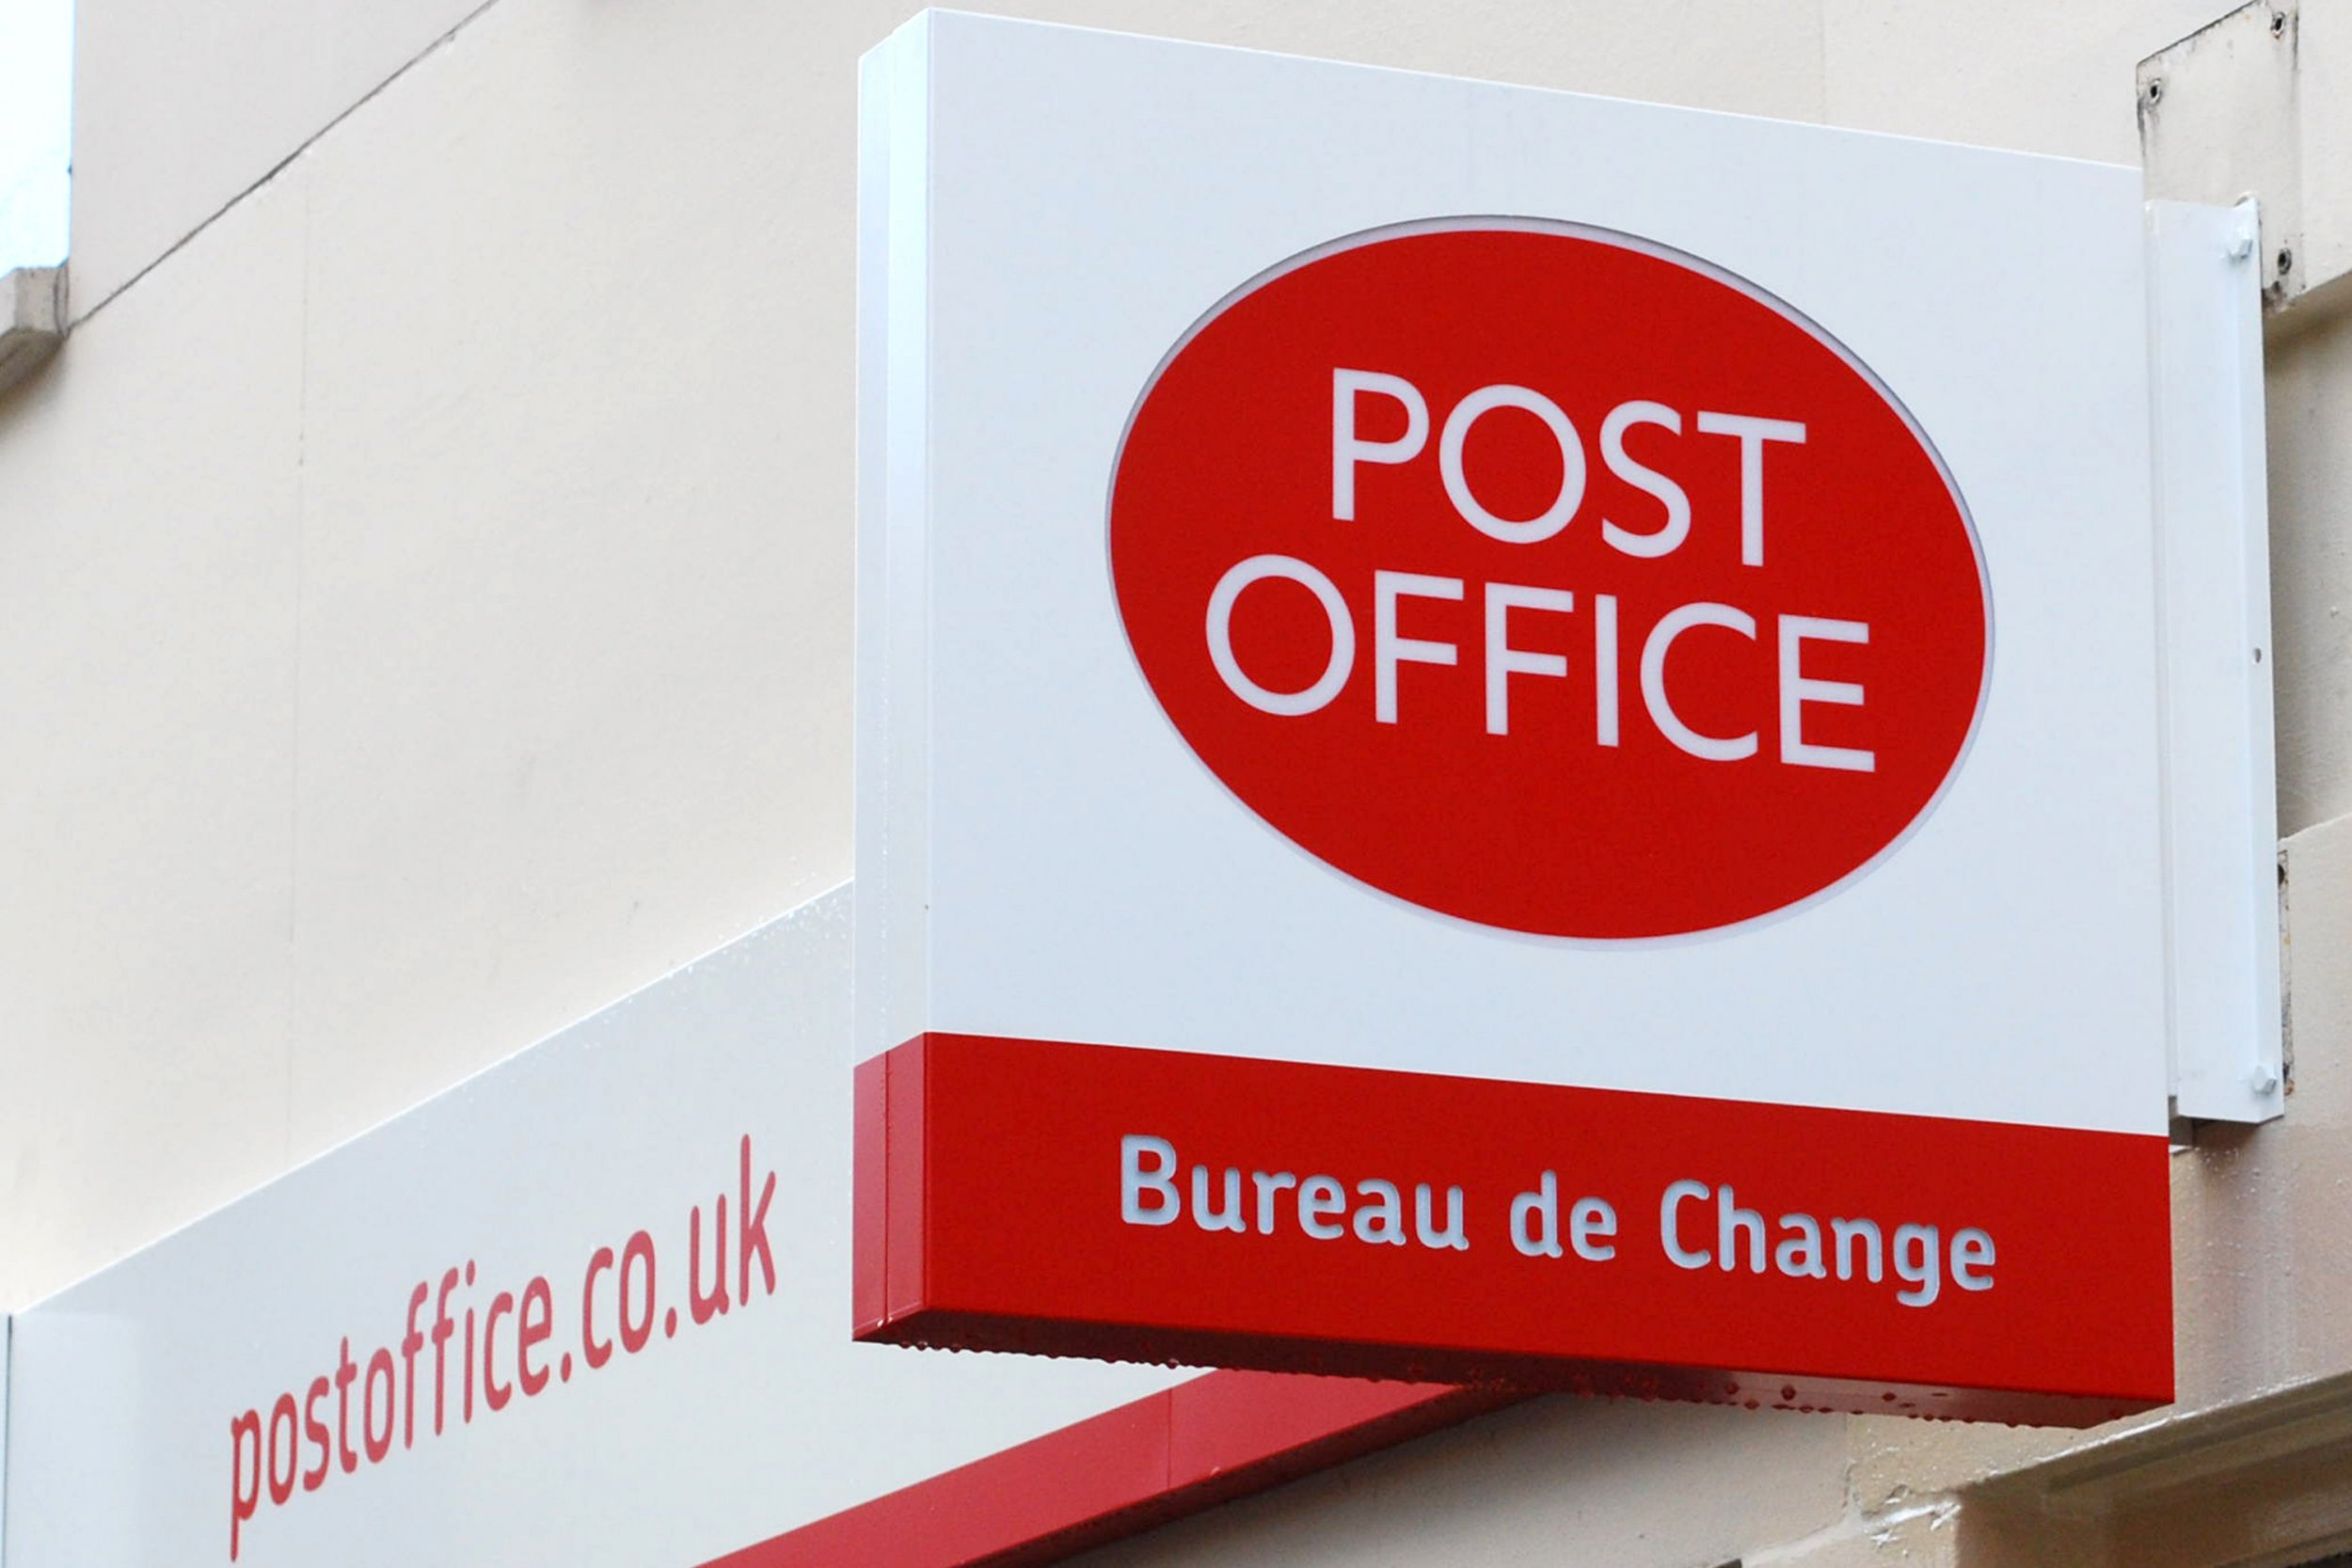 Royal Mail says Post Office walk out will have 'little impact' on Christmas deliveries